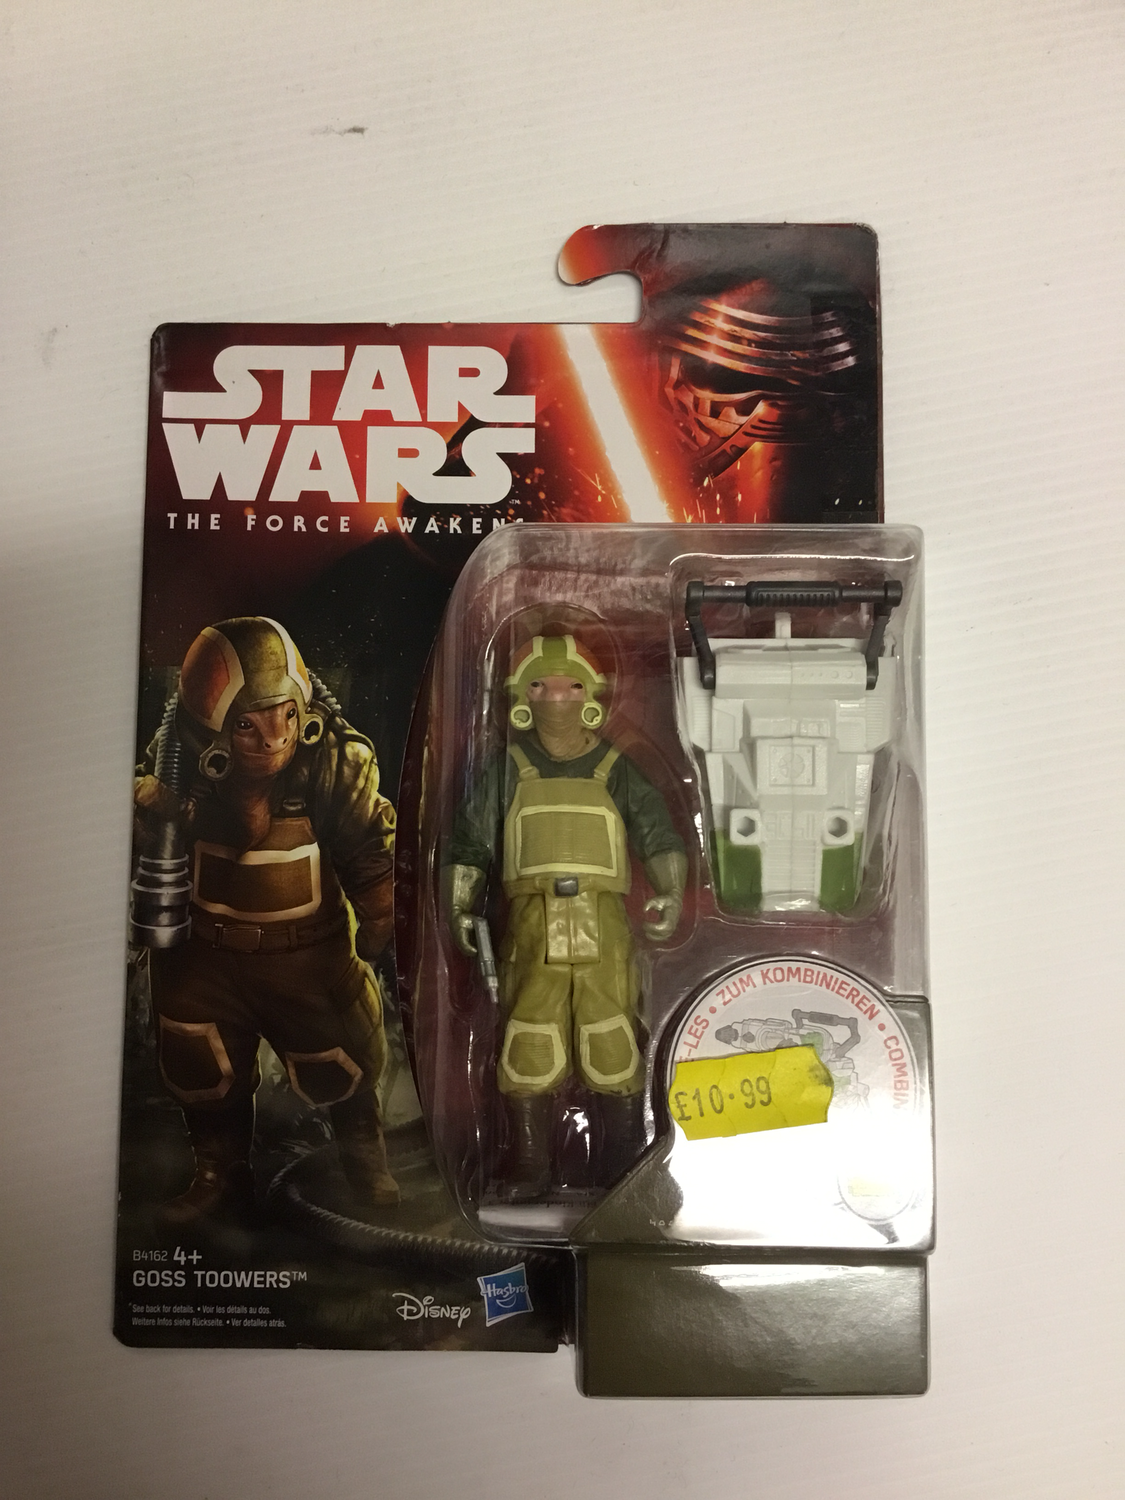 Gods toowers Star Wars figure